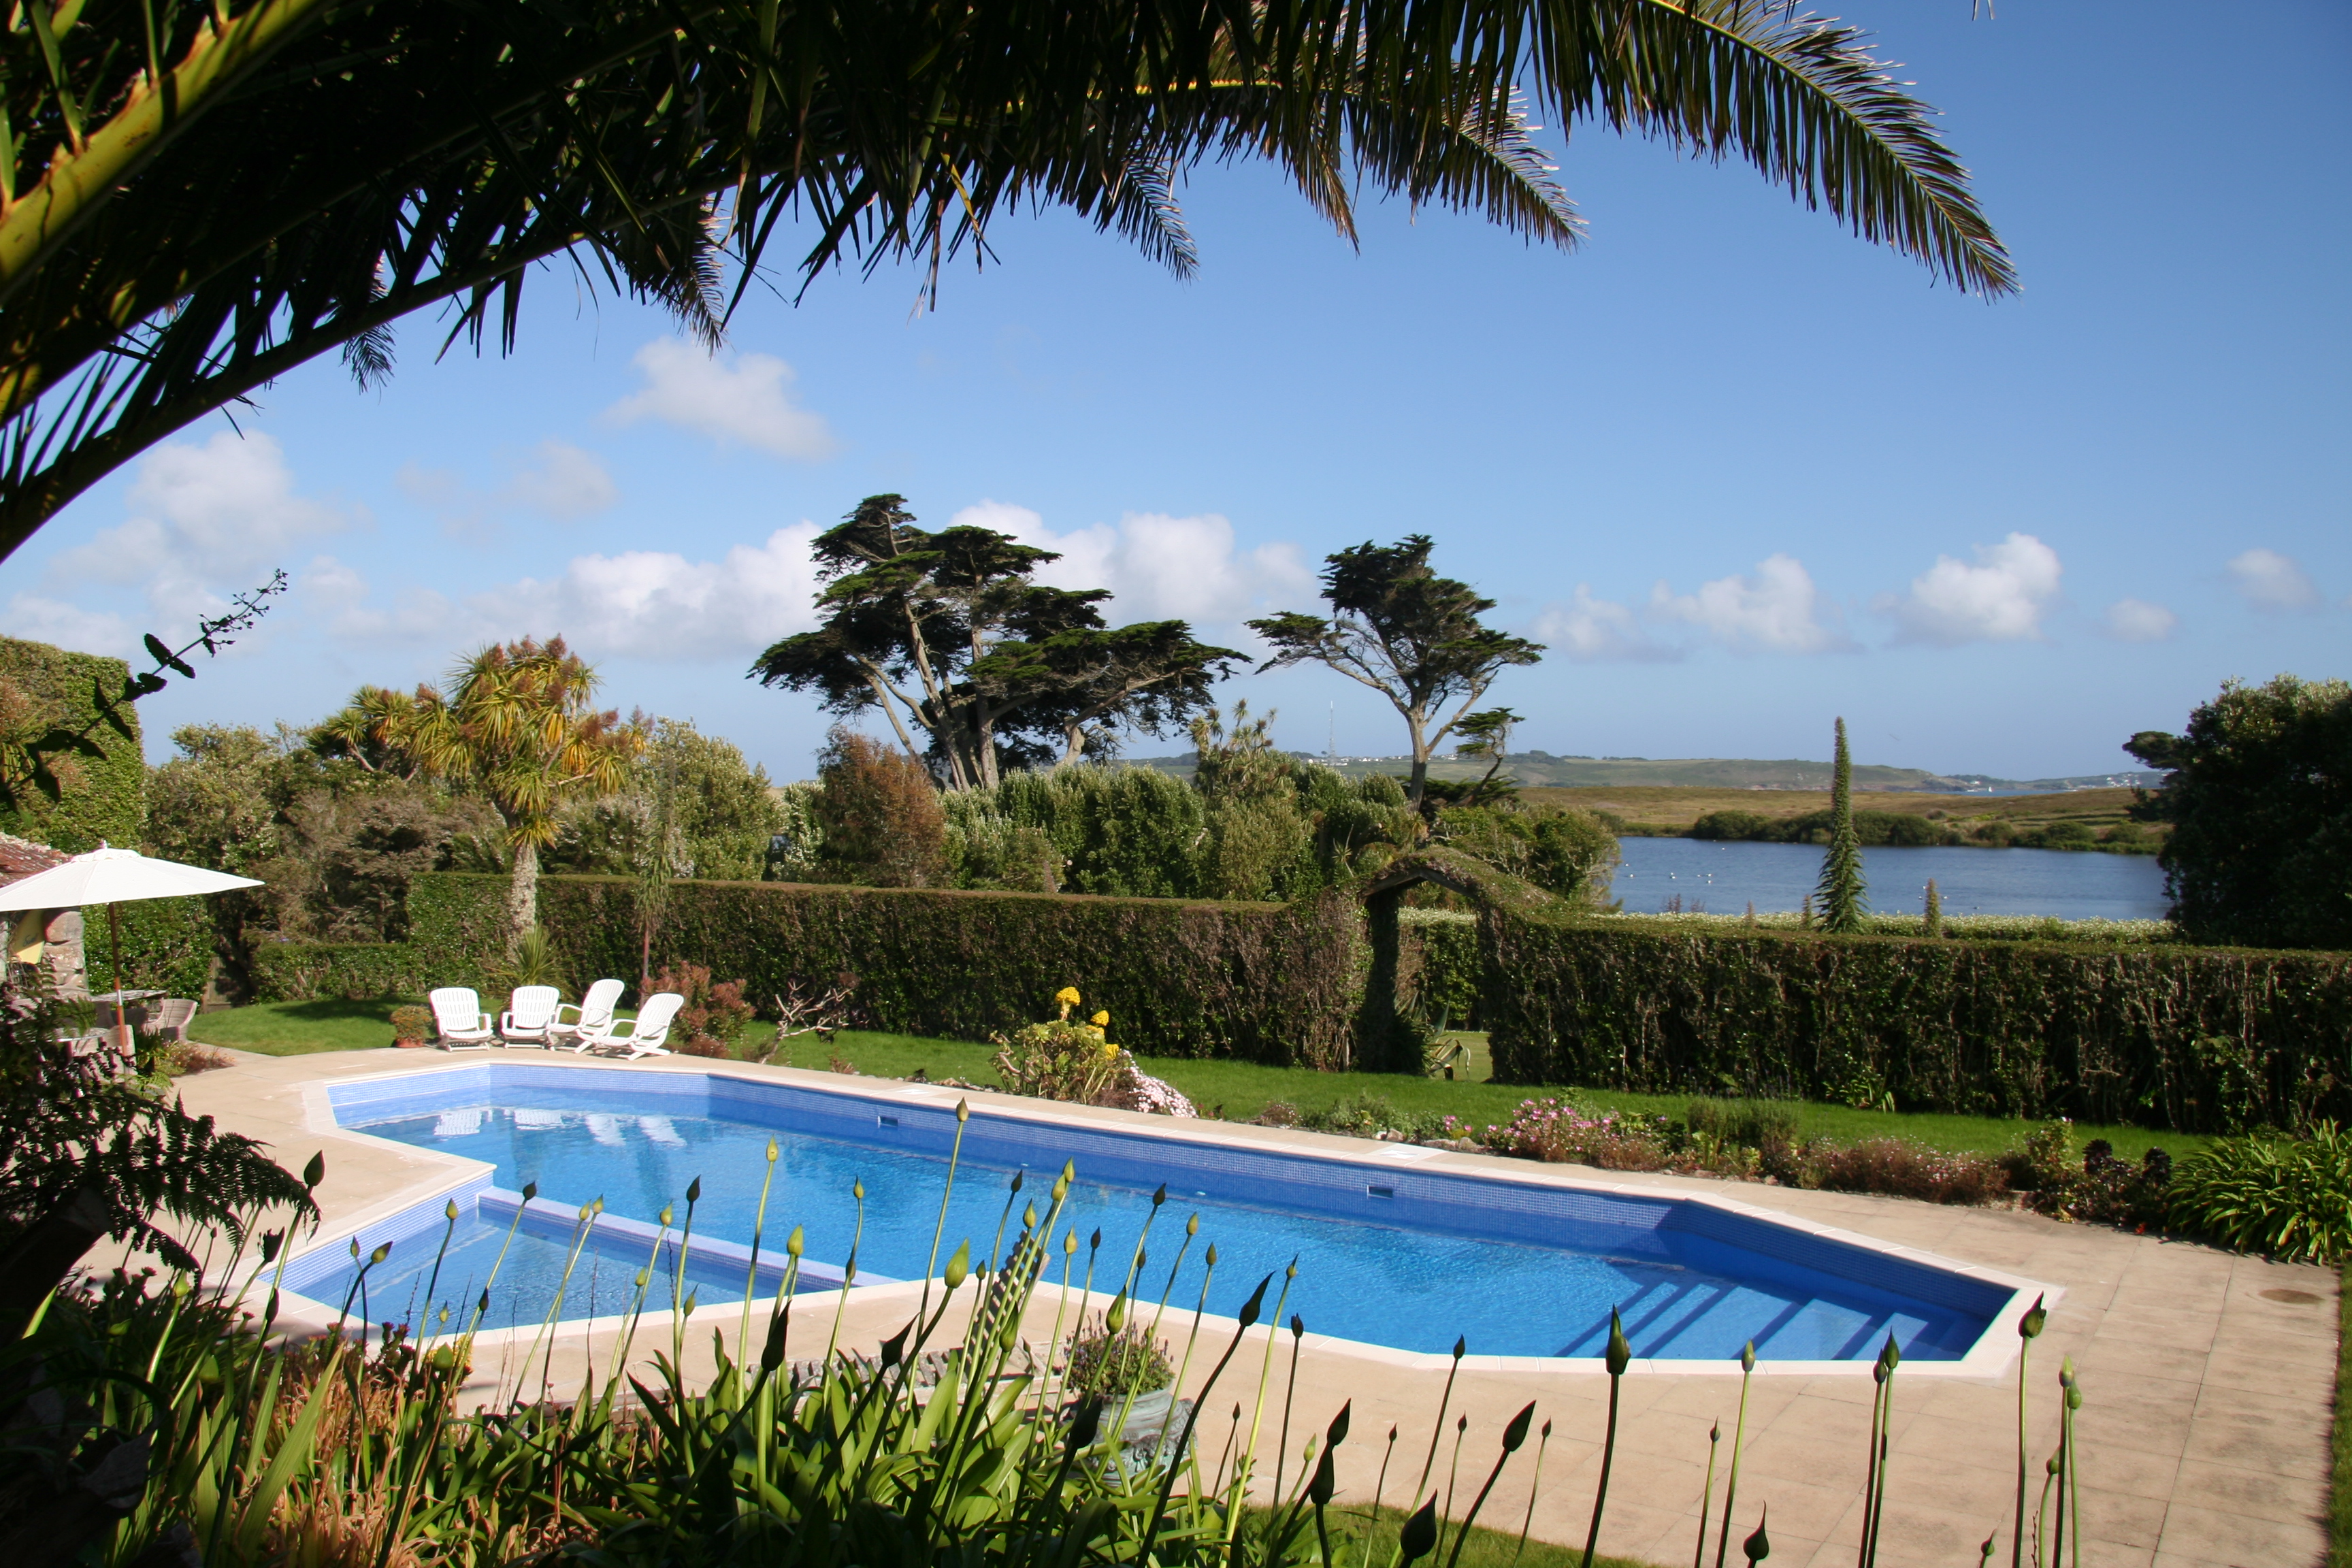 Experts in swimming pool design build millaquia for Outdoor swimming pool design uk